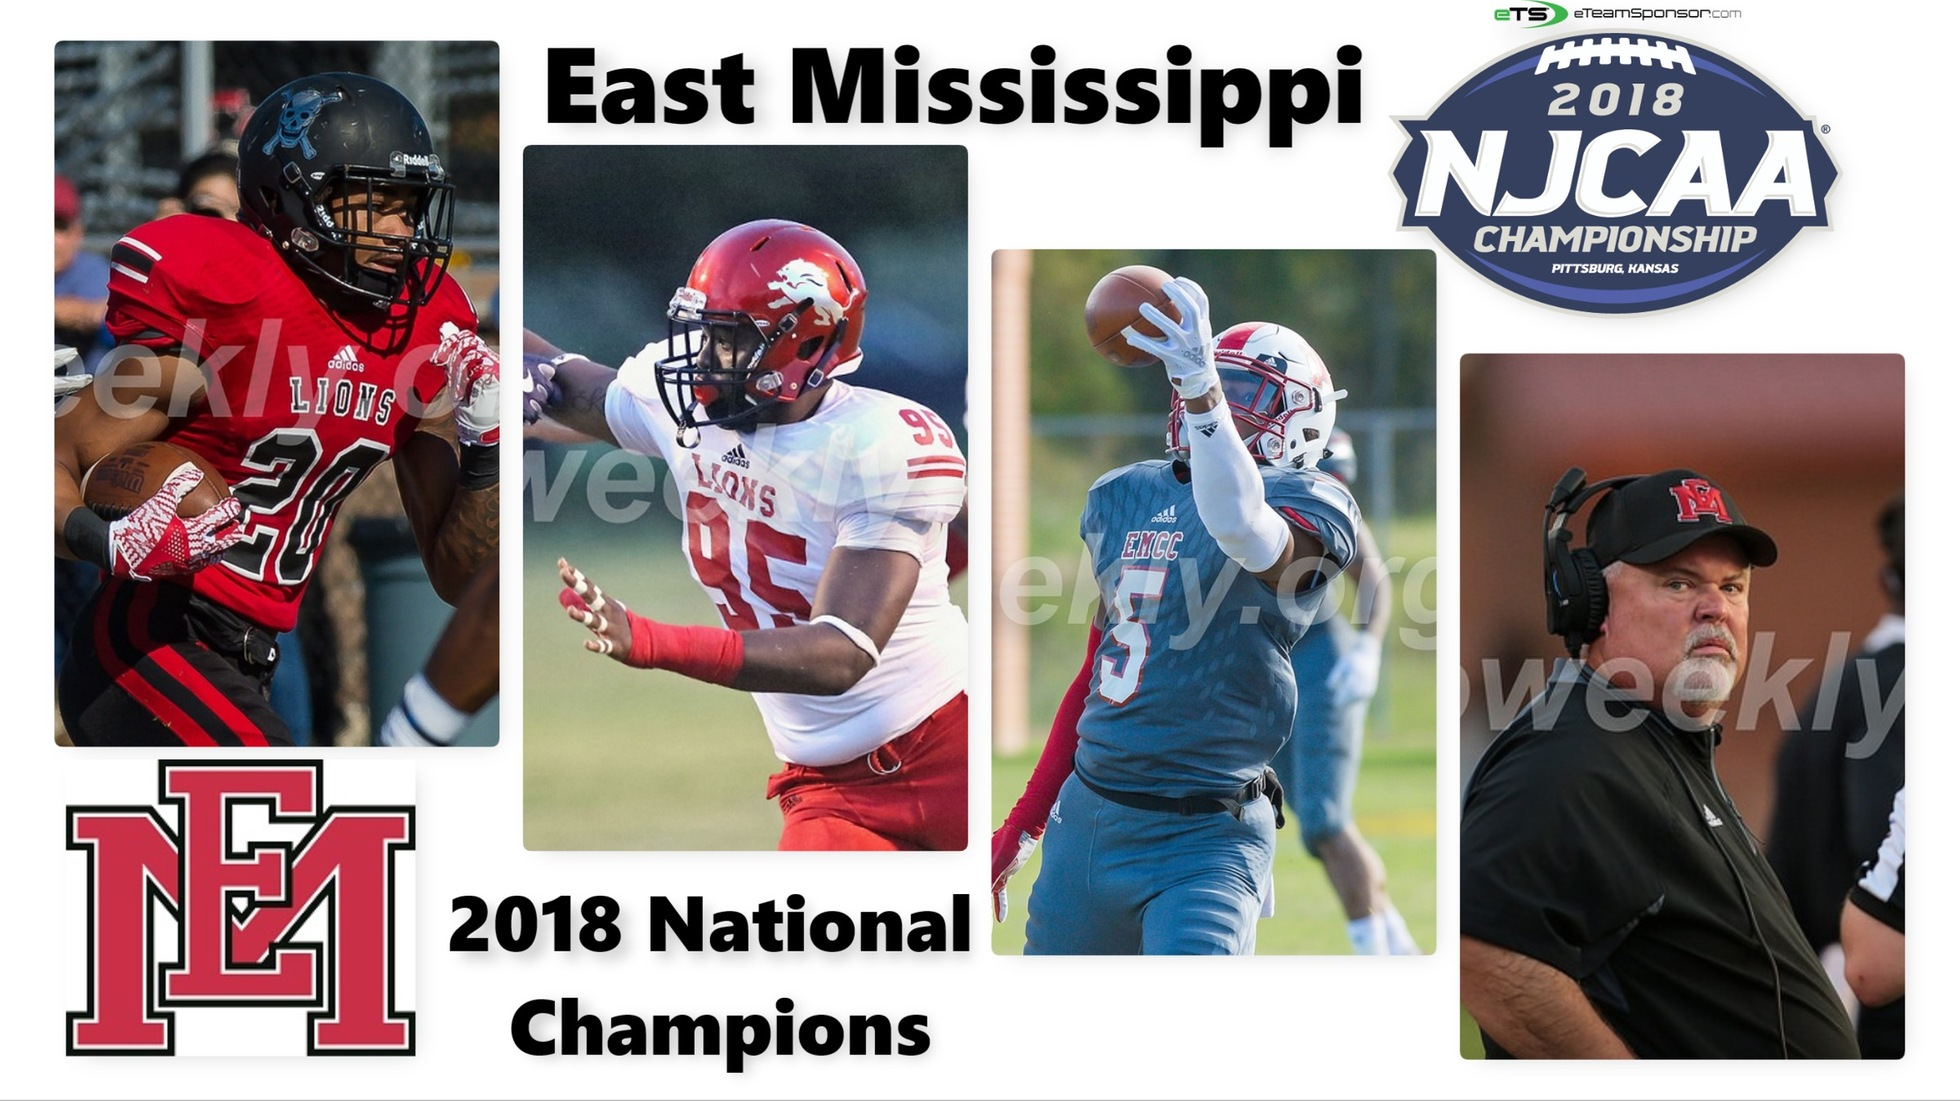 East Mississippi defeats Garden City to win 5th National Championship Title